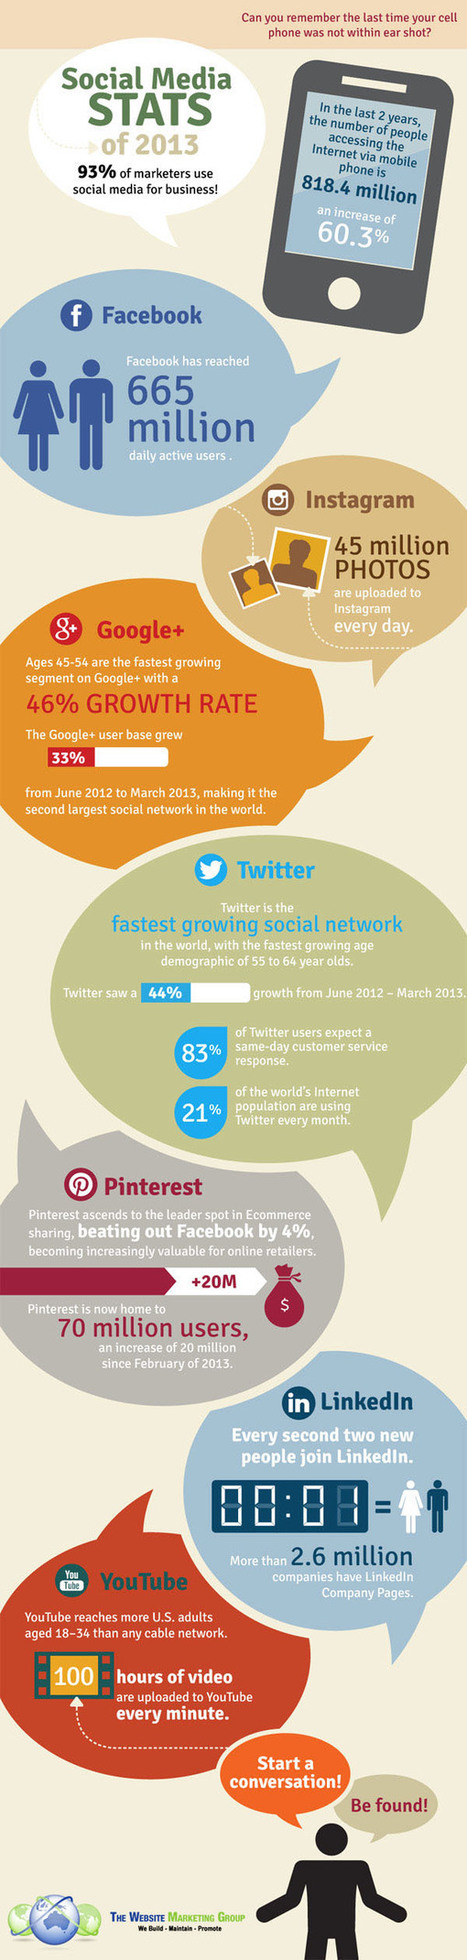 Social Media Infographic 2013 : Which platform is growing the fastest? | Personal Branding and Professional networks - @Socialfave @TheMisterFavor @TOOLS_BOX_DEV @TOOLS_BOX_EUR @P_TREBAUL @DNAMktg @DNADatas @BRETAGNE_CHARME @TOOLS_BOX_IND @TOOLS_BOX_ITA @TOOLS_BOX_UK @TOOLS_BOX_ESP @TOOLS_BOX_GER @TOOLS_BOX_DEV @TOOLS_BOX_BRA | Scoop.it